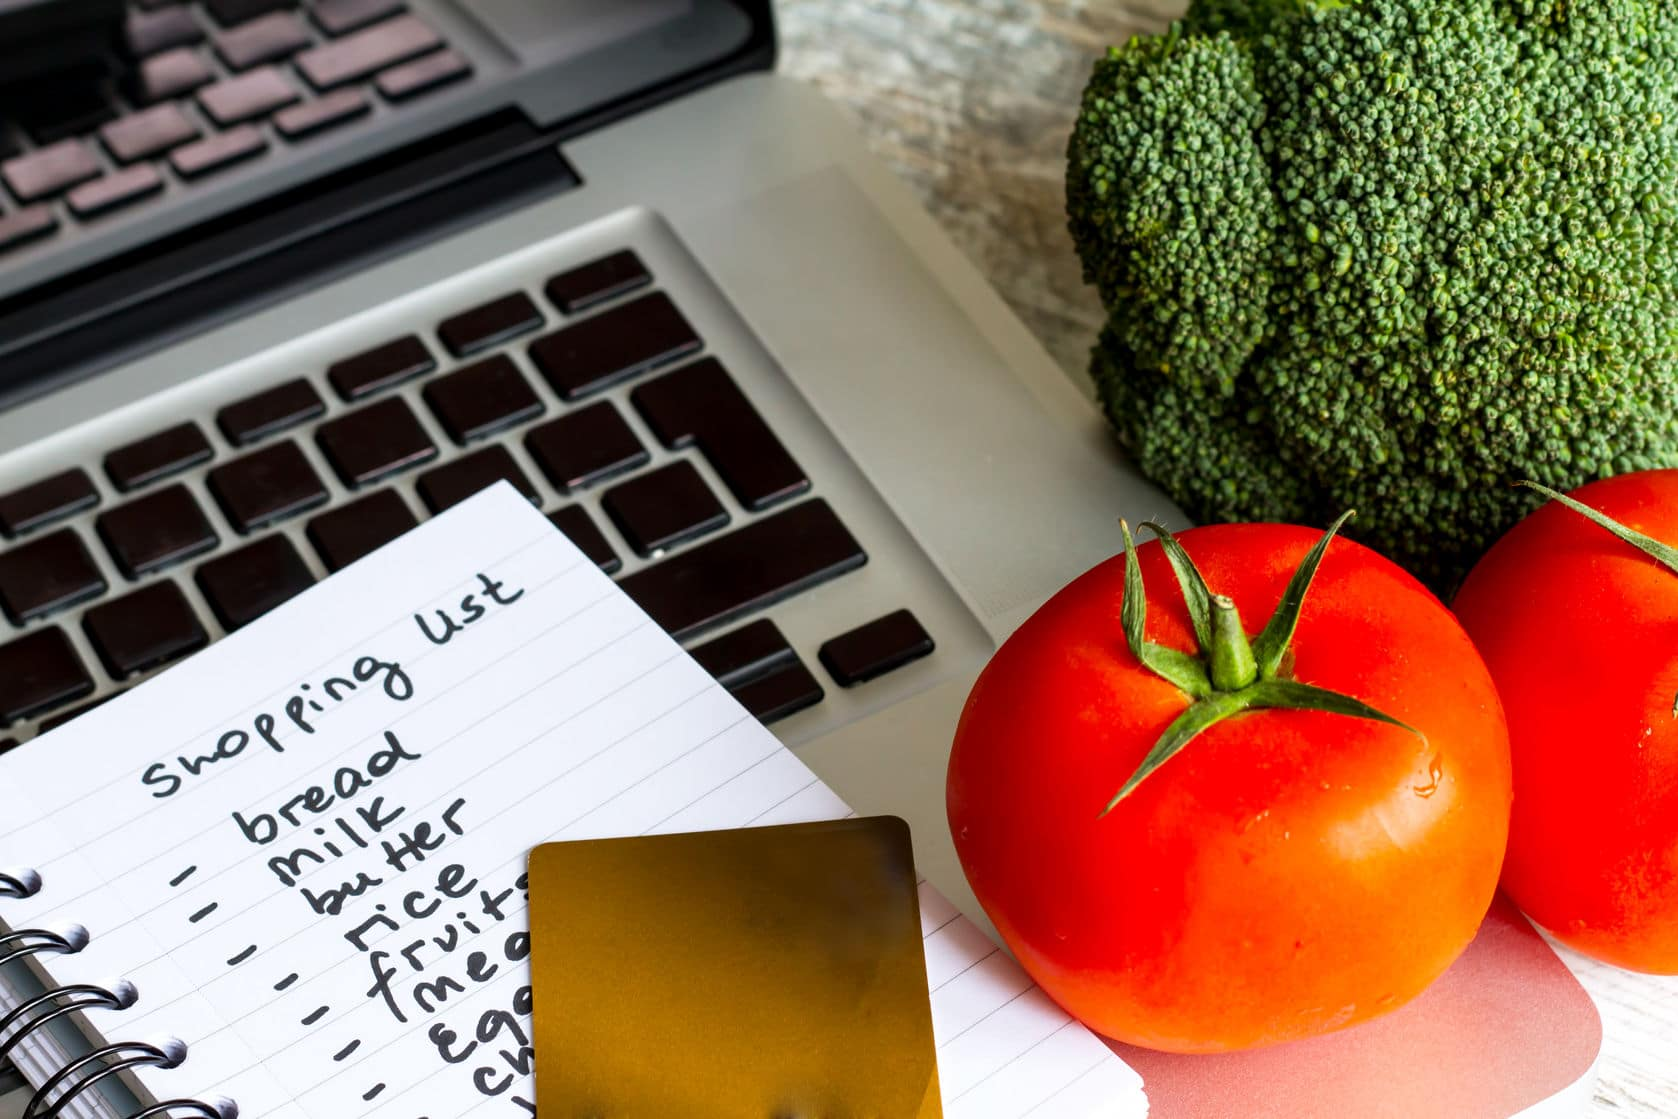 Plan your meals so you can budget for groceries and save a little extra cash